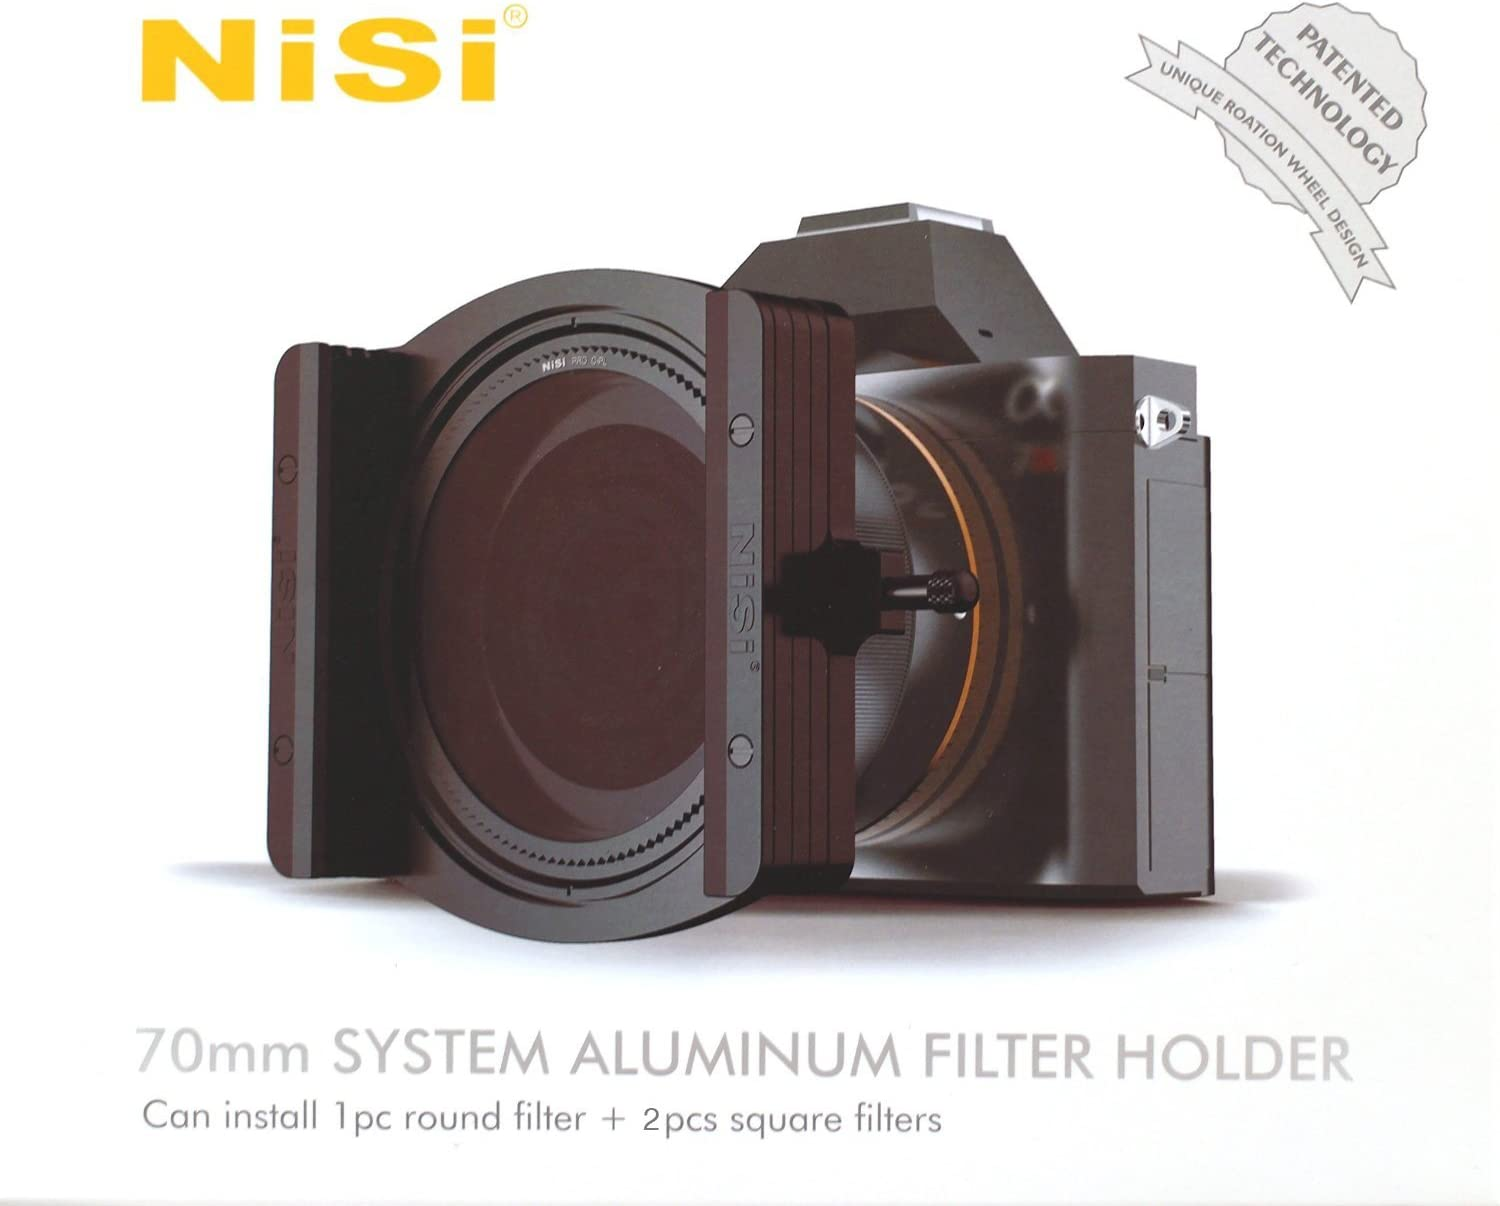 NiSi NIP-FH70-M1 Ikan M1 70mm Filter Holder with Integrated CPL Black